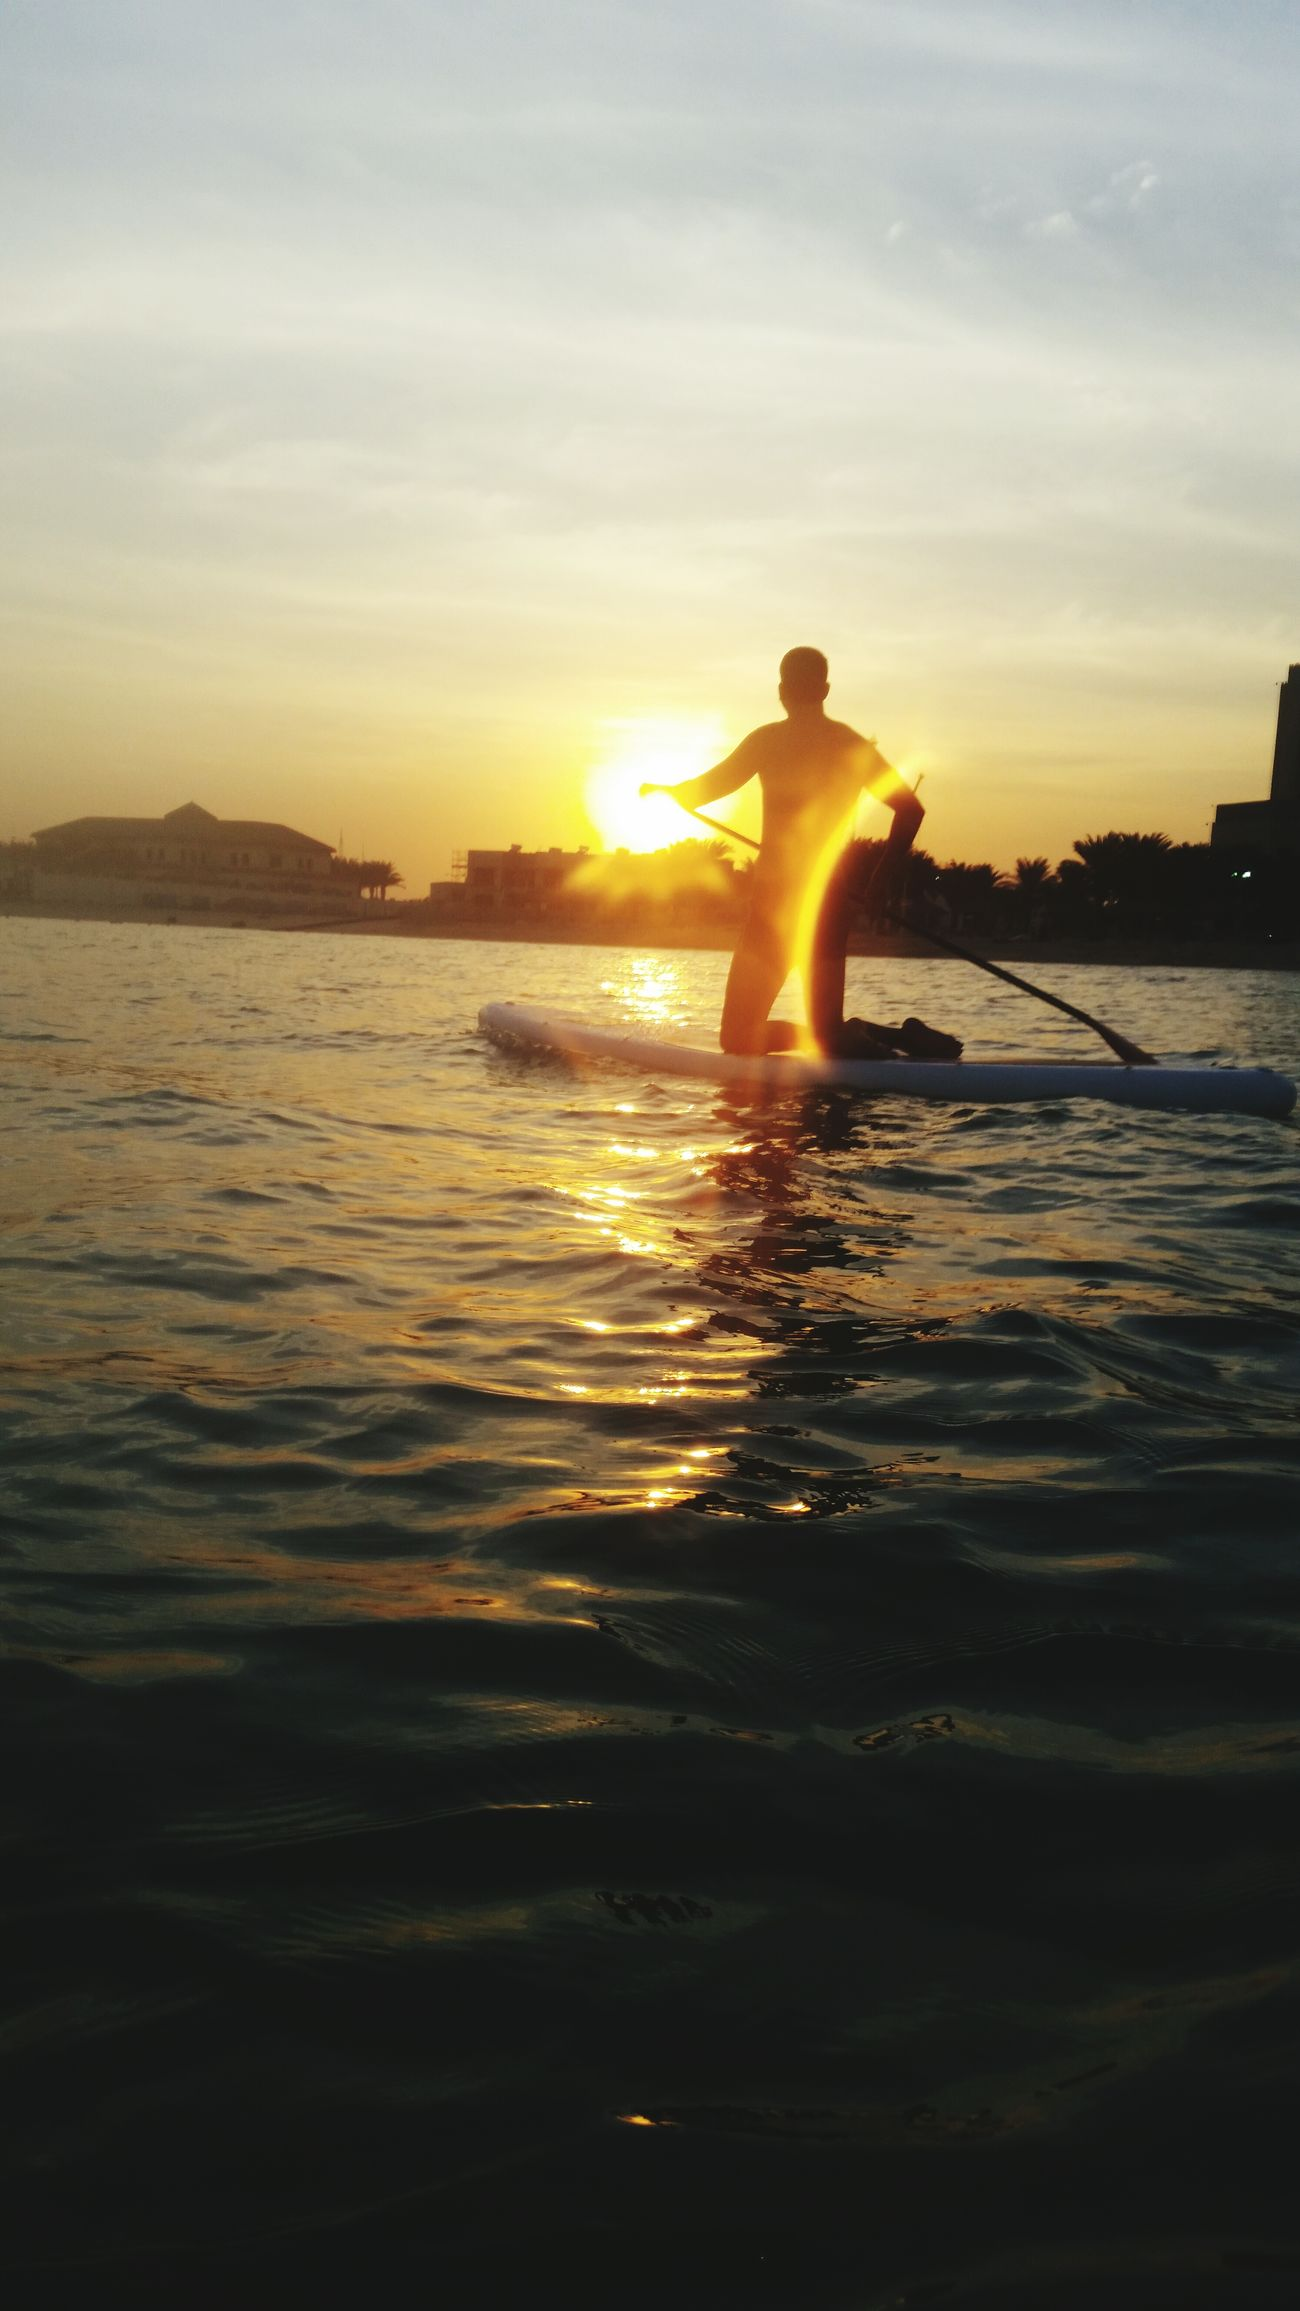 Sup Standuppaddle Beachlife Sea Sunset_collection Sunrise_sunsets_aroundworld